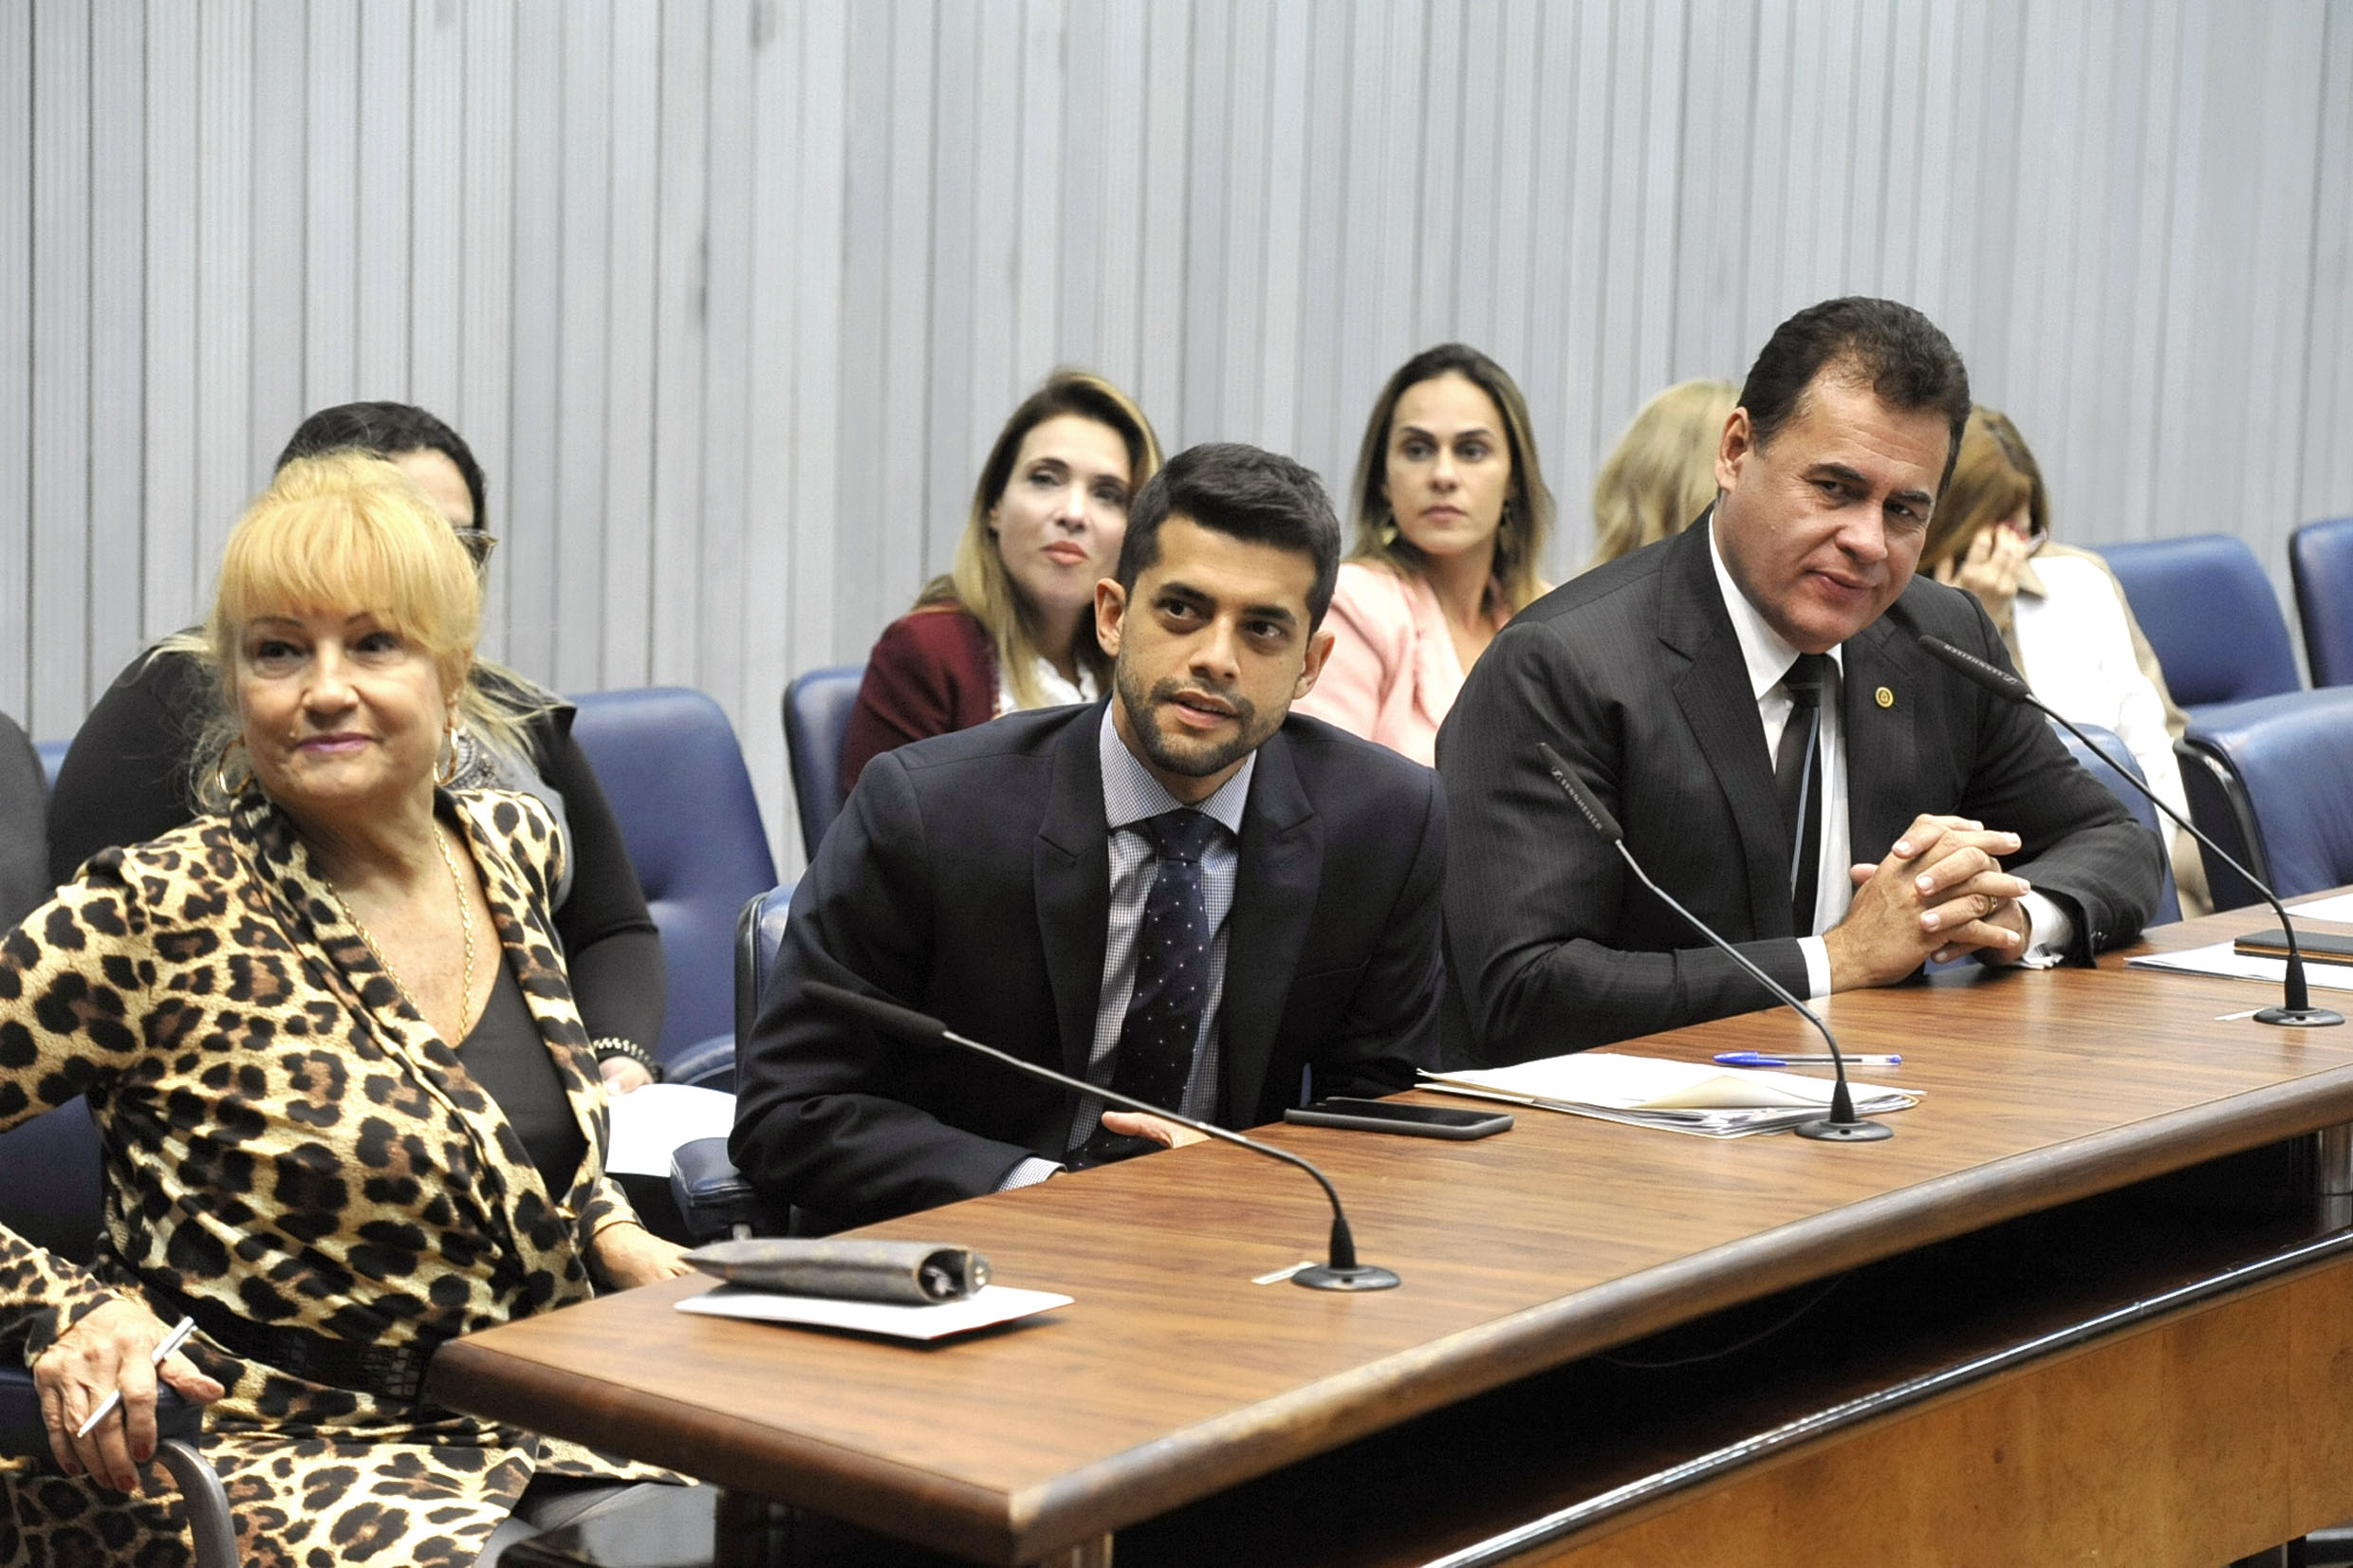 Parlamentares na CPI<a style='float:right' href='https://www3.al.sp.gov.br/repositorio/noticia/N-05-2019/fg233839.jpg' target=_blank><img src='/_img/material-file-download-white.png' width='14px' alt='Clique para baixar a imagem'></a>